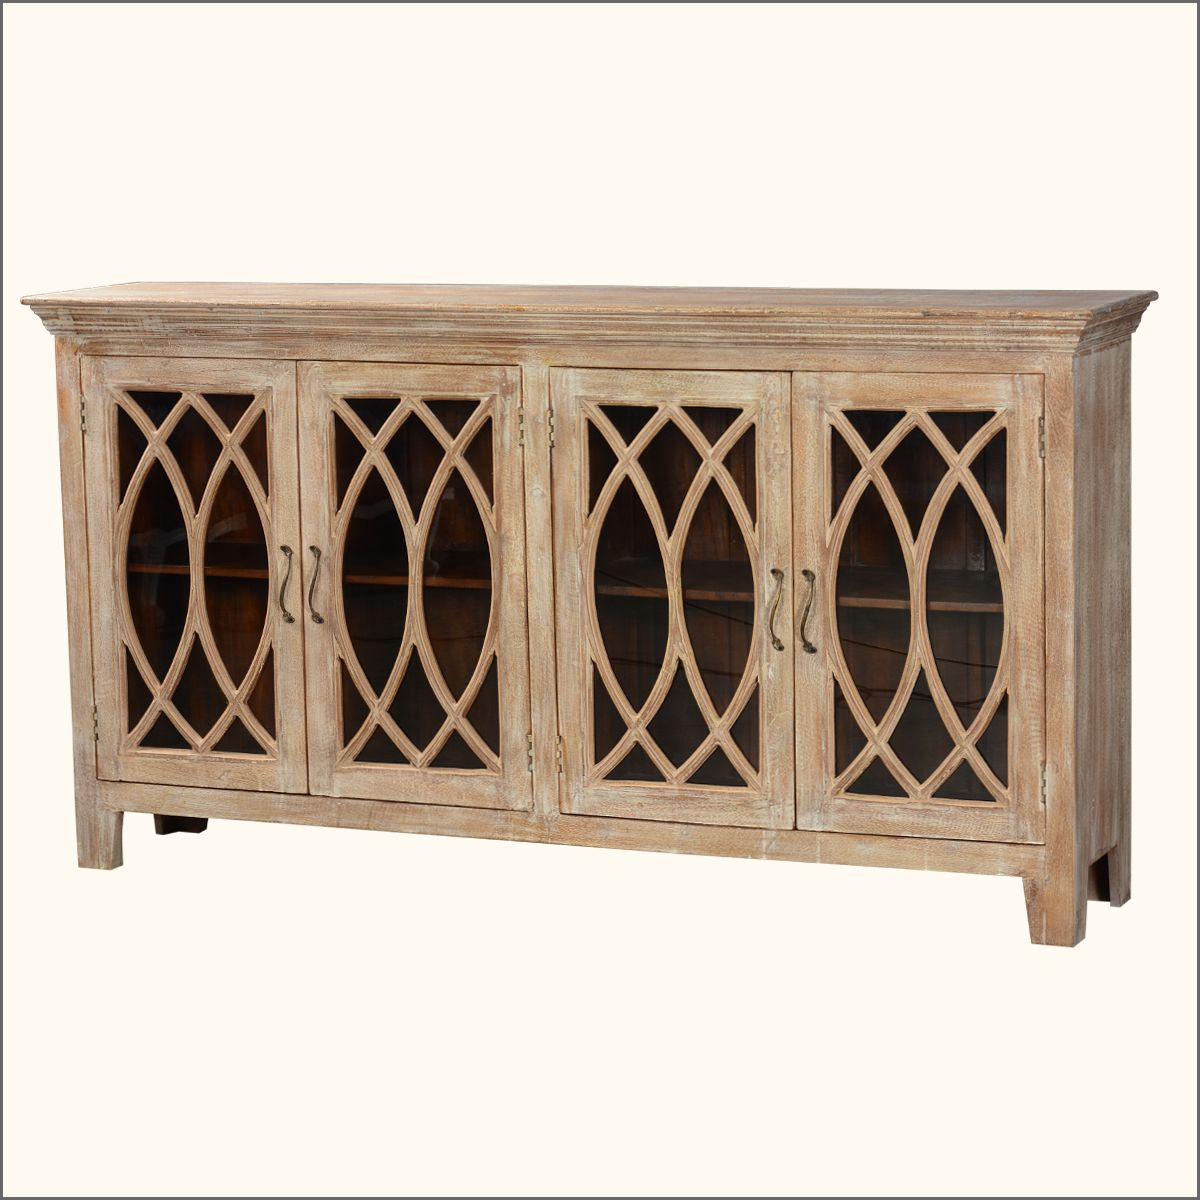 81 5 Solid Wood Glass Door Sideboard 4 Door Rustic Buffet Cabinet